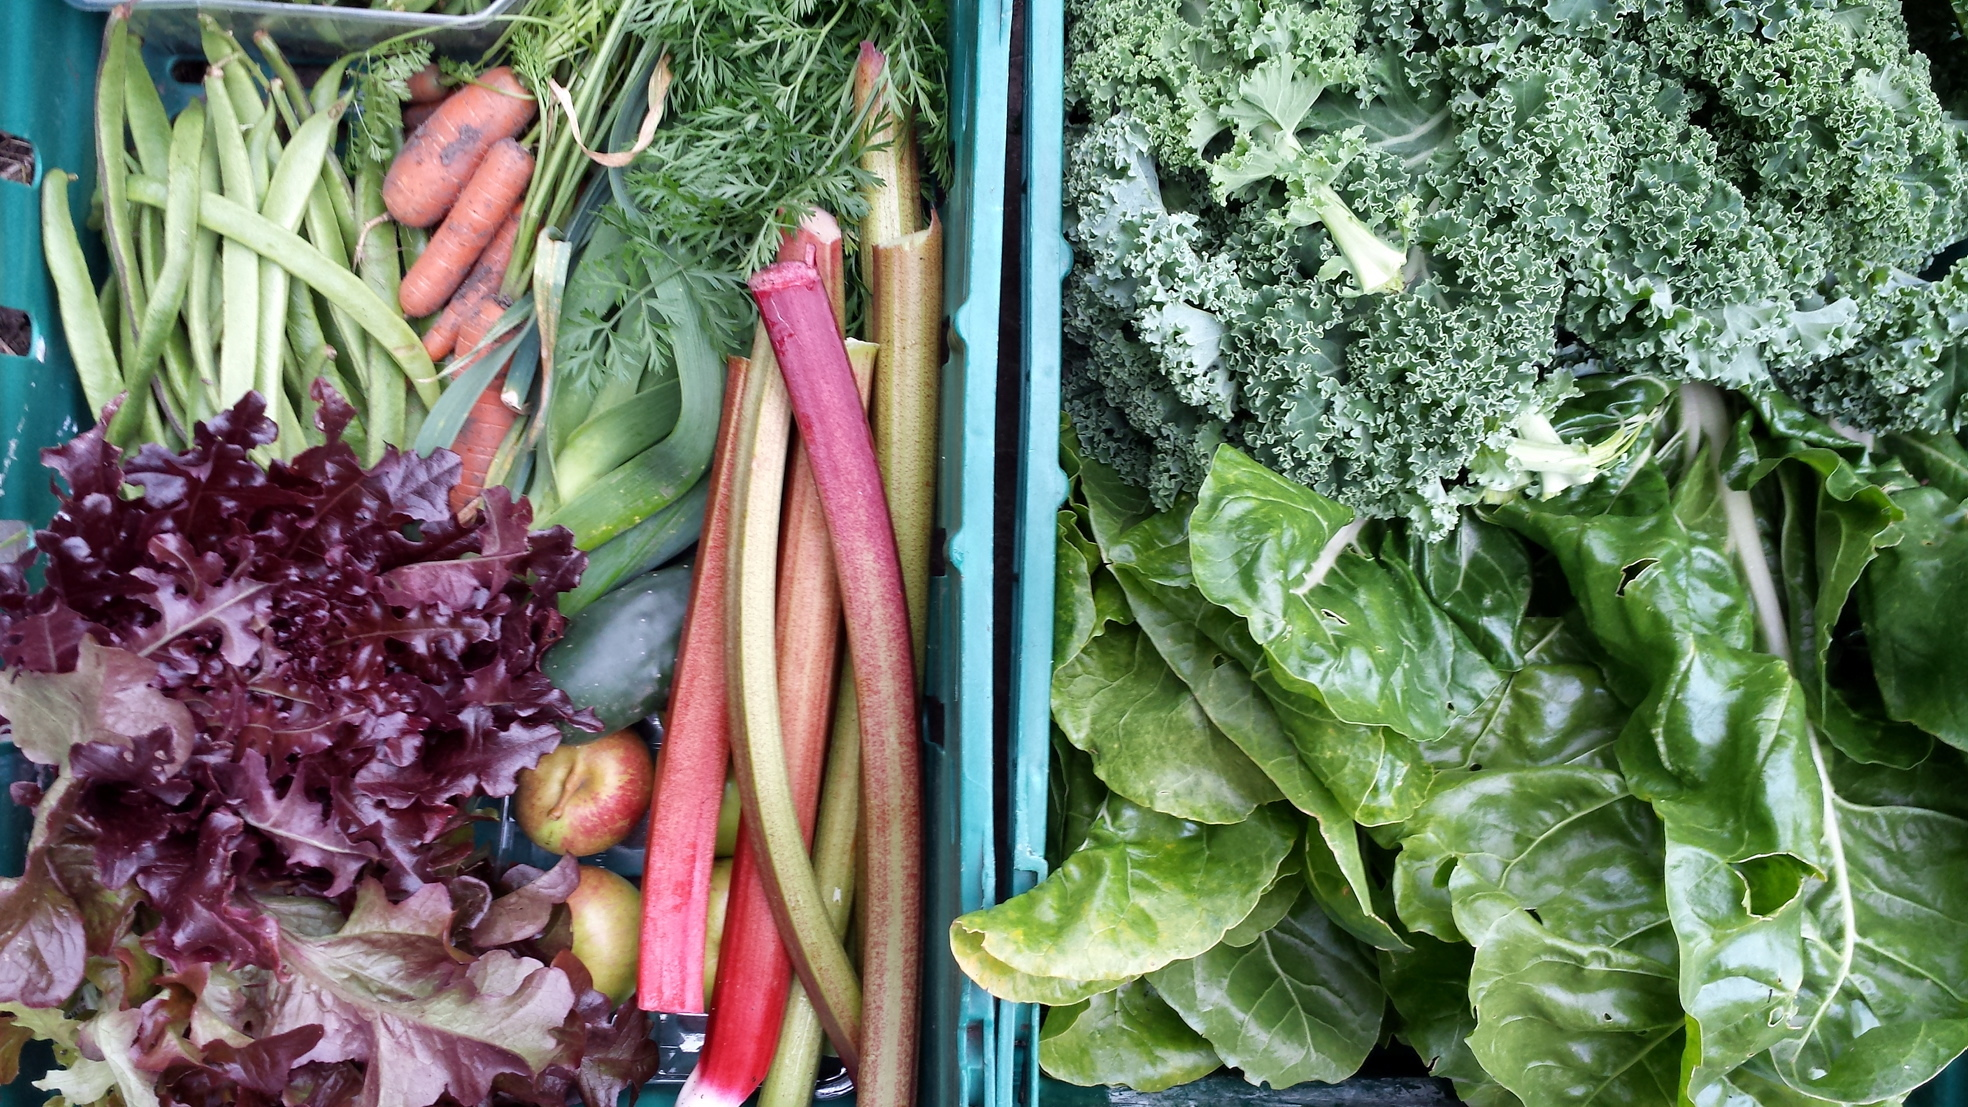 FIVE-A-DAY:  Fruit and veg are sold.